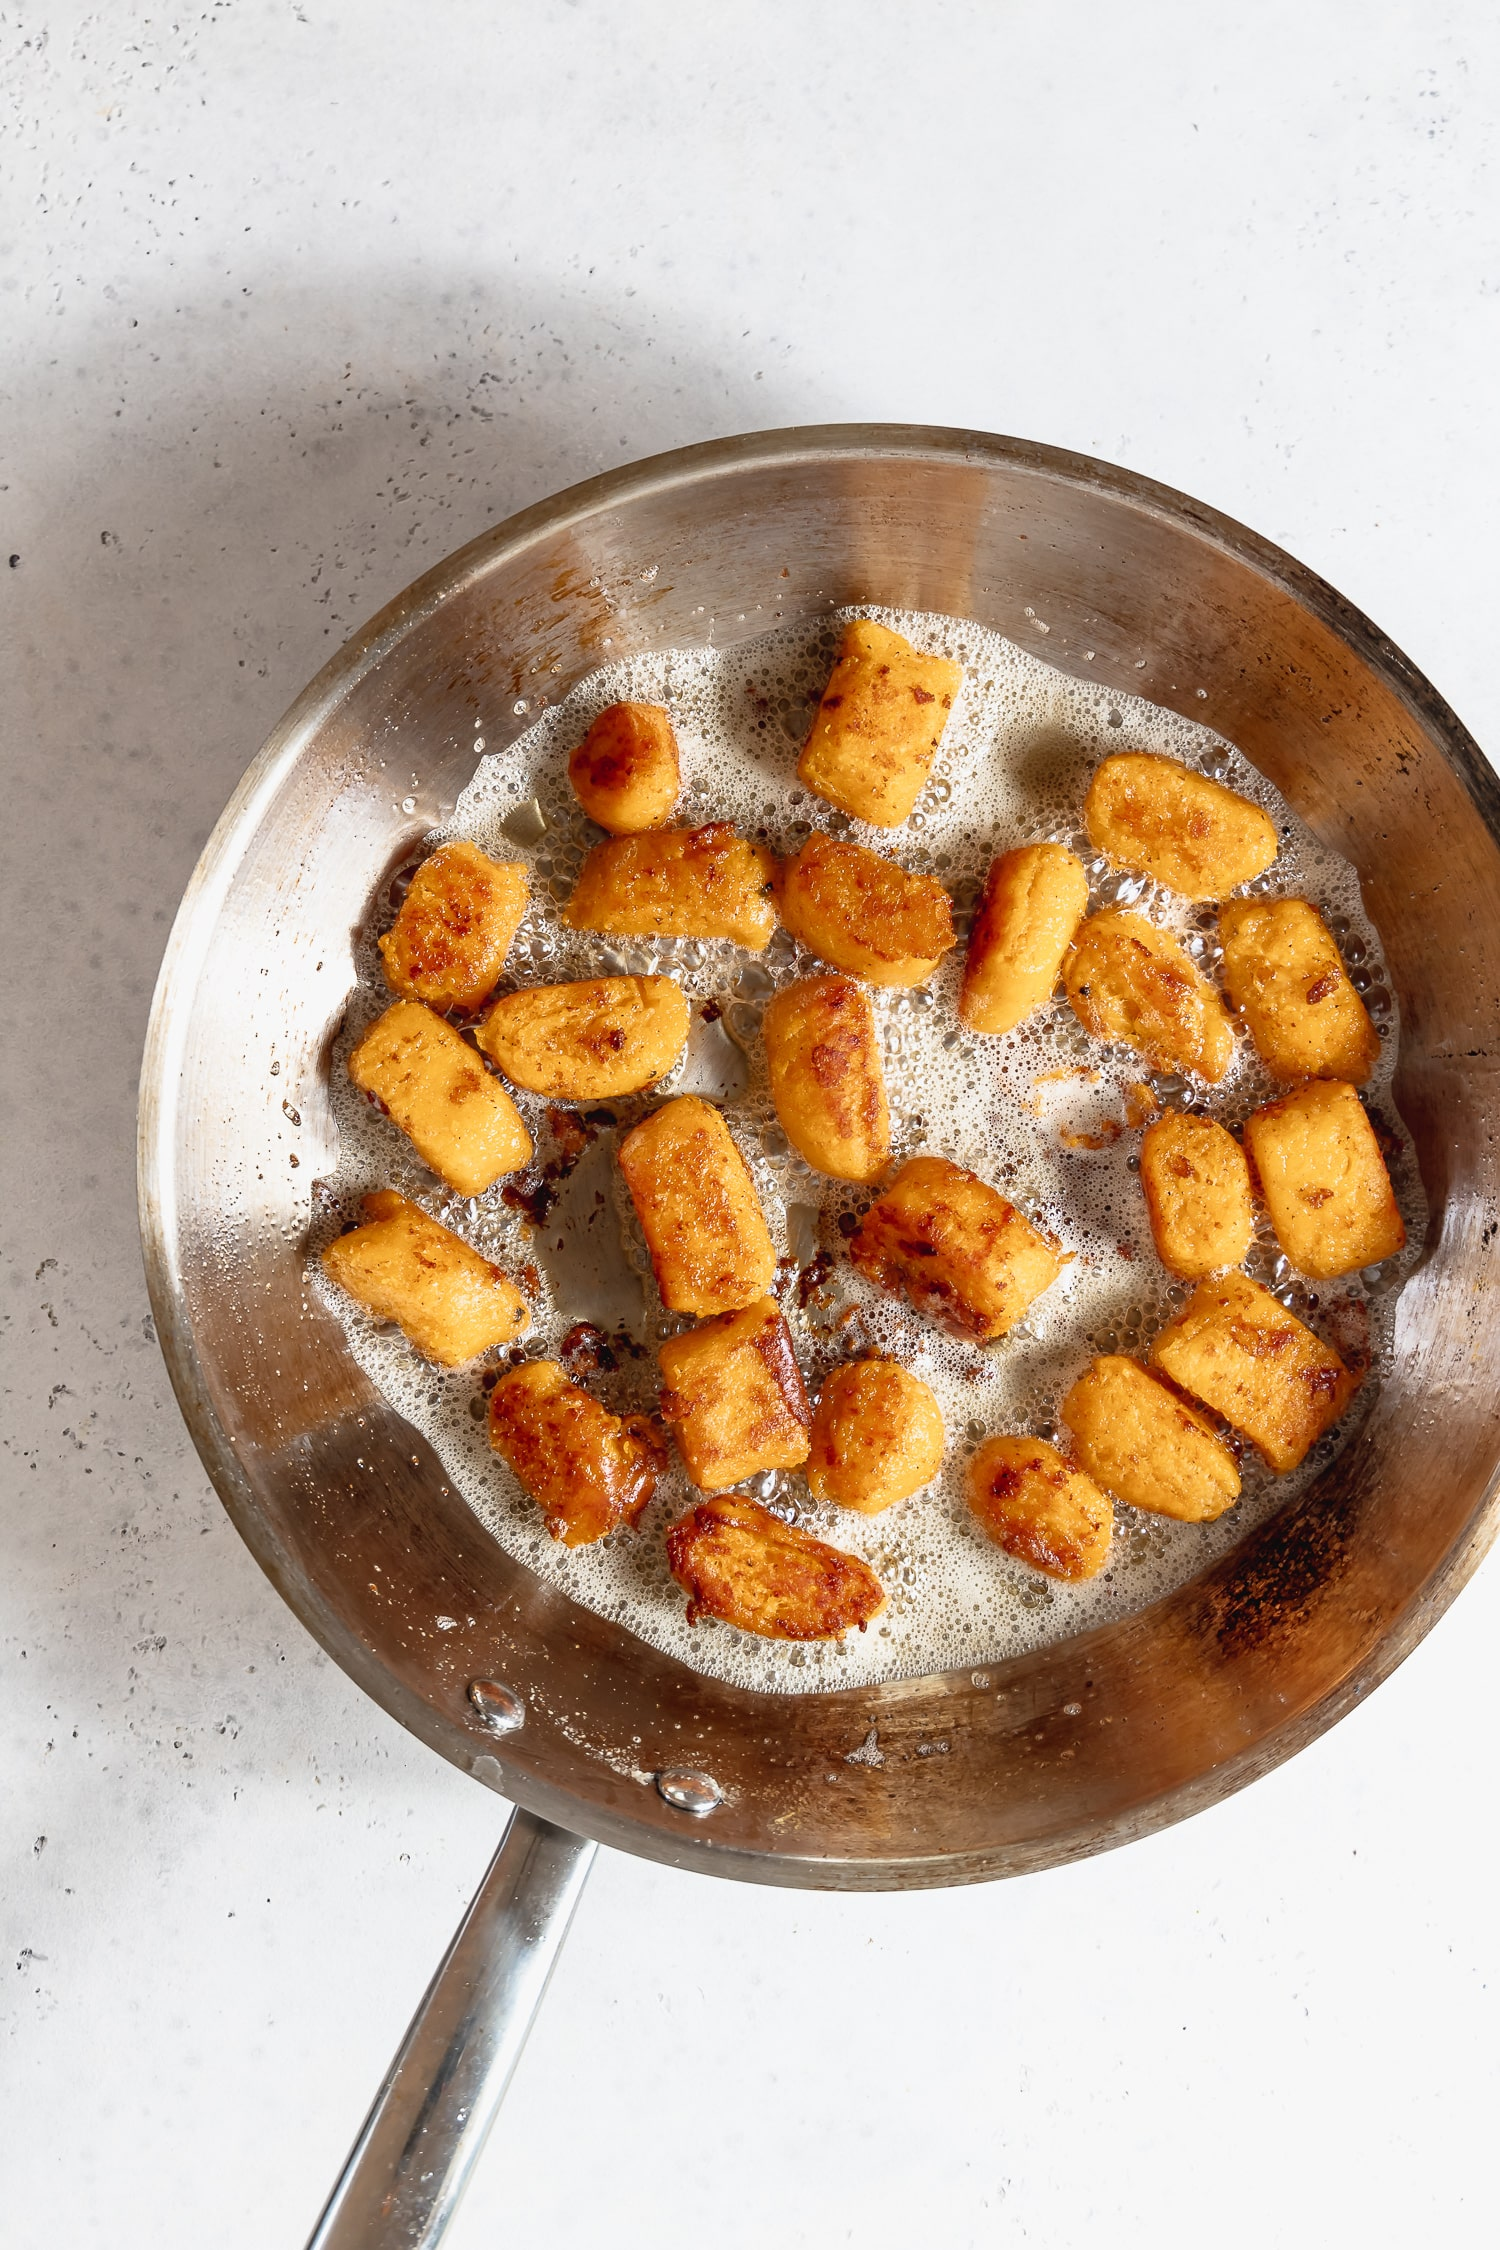 skillet of sweet potato gnocchi in brown butter